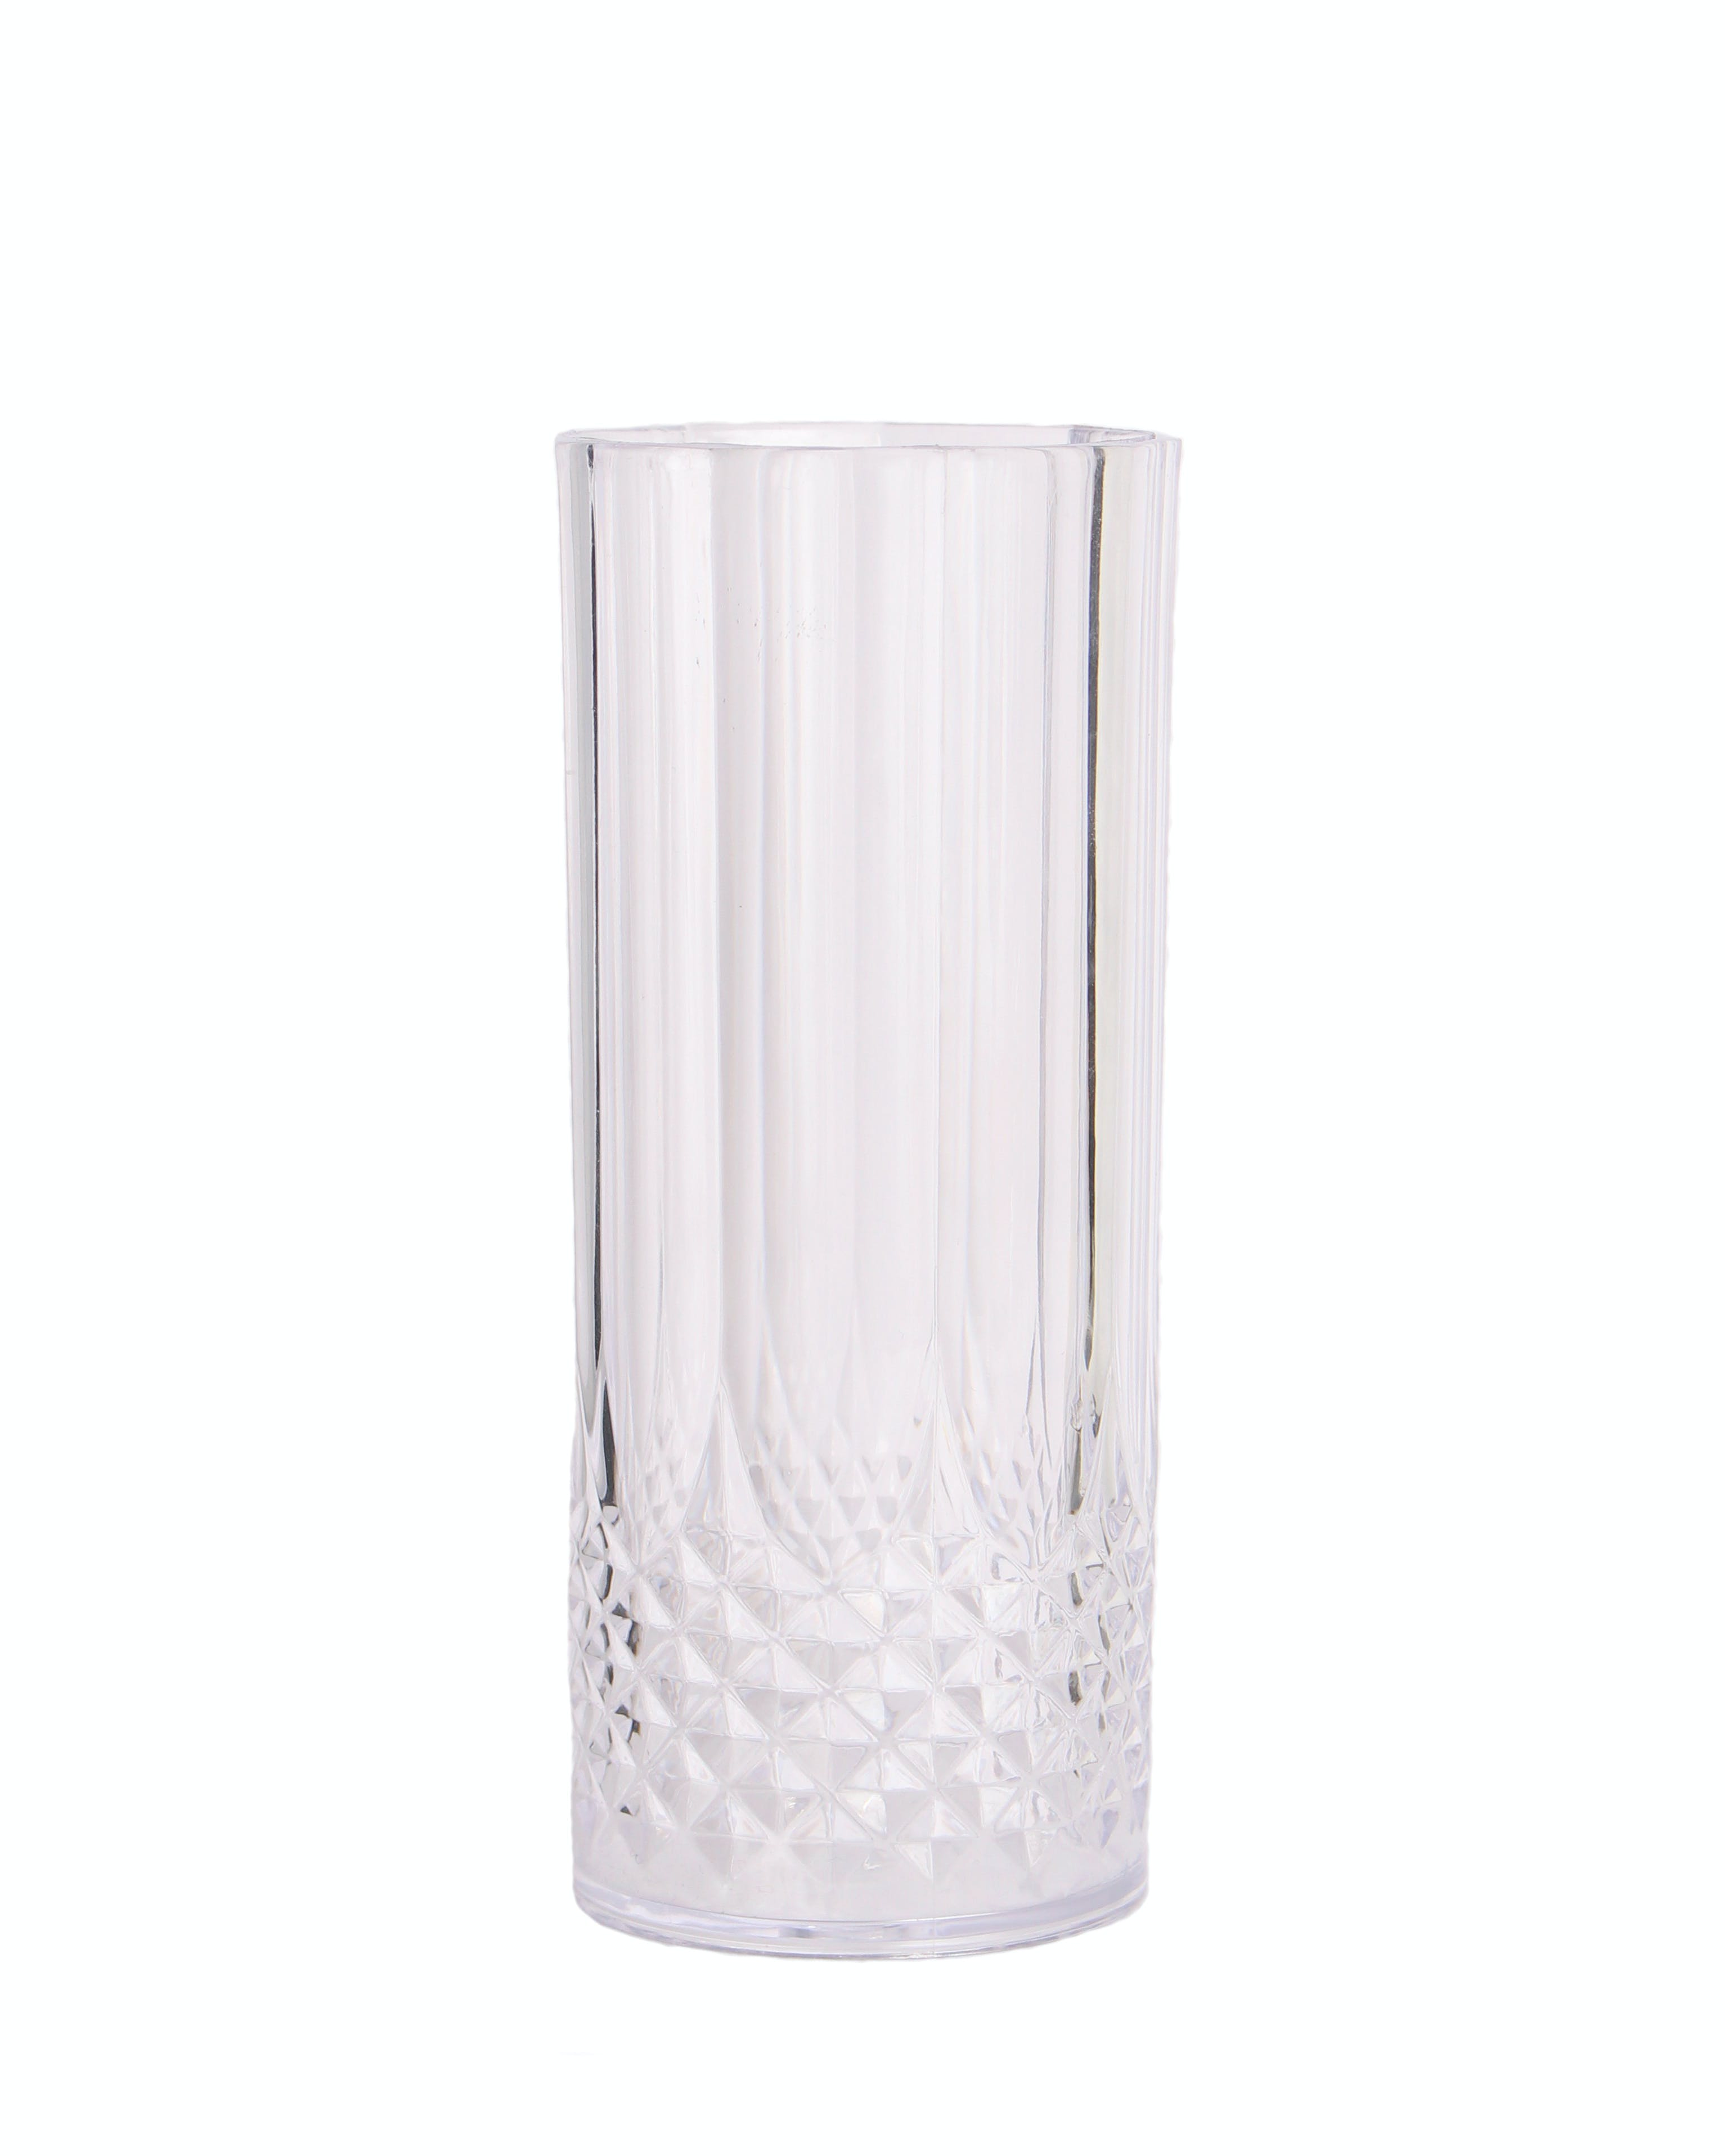 Crystal-Like Highball Glasses Disposable cup sold by www.blueskyny.com